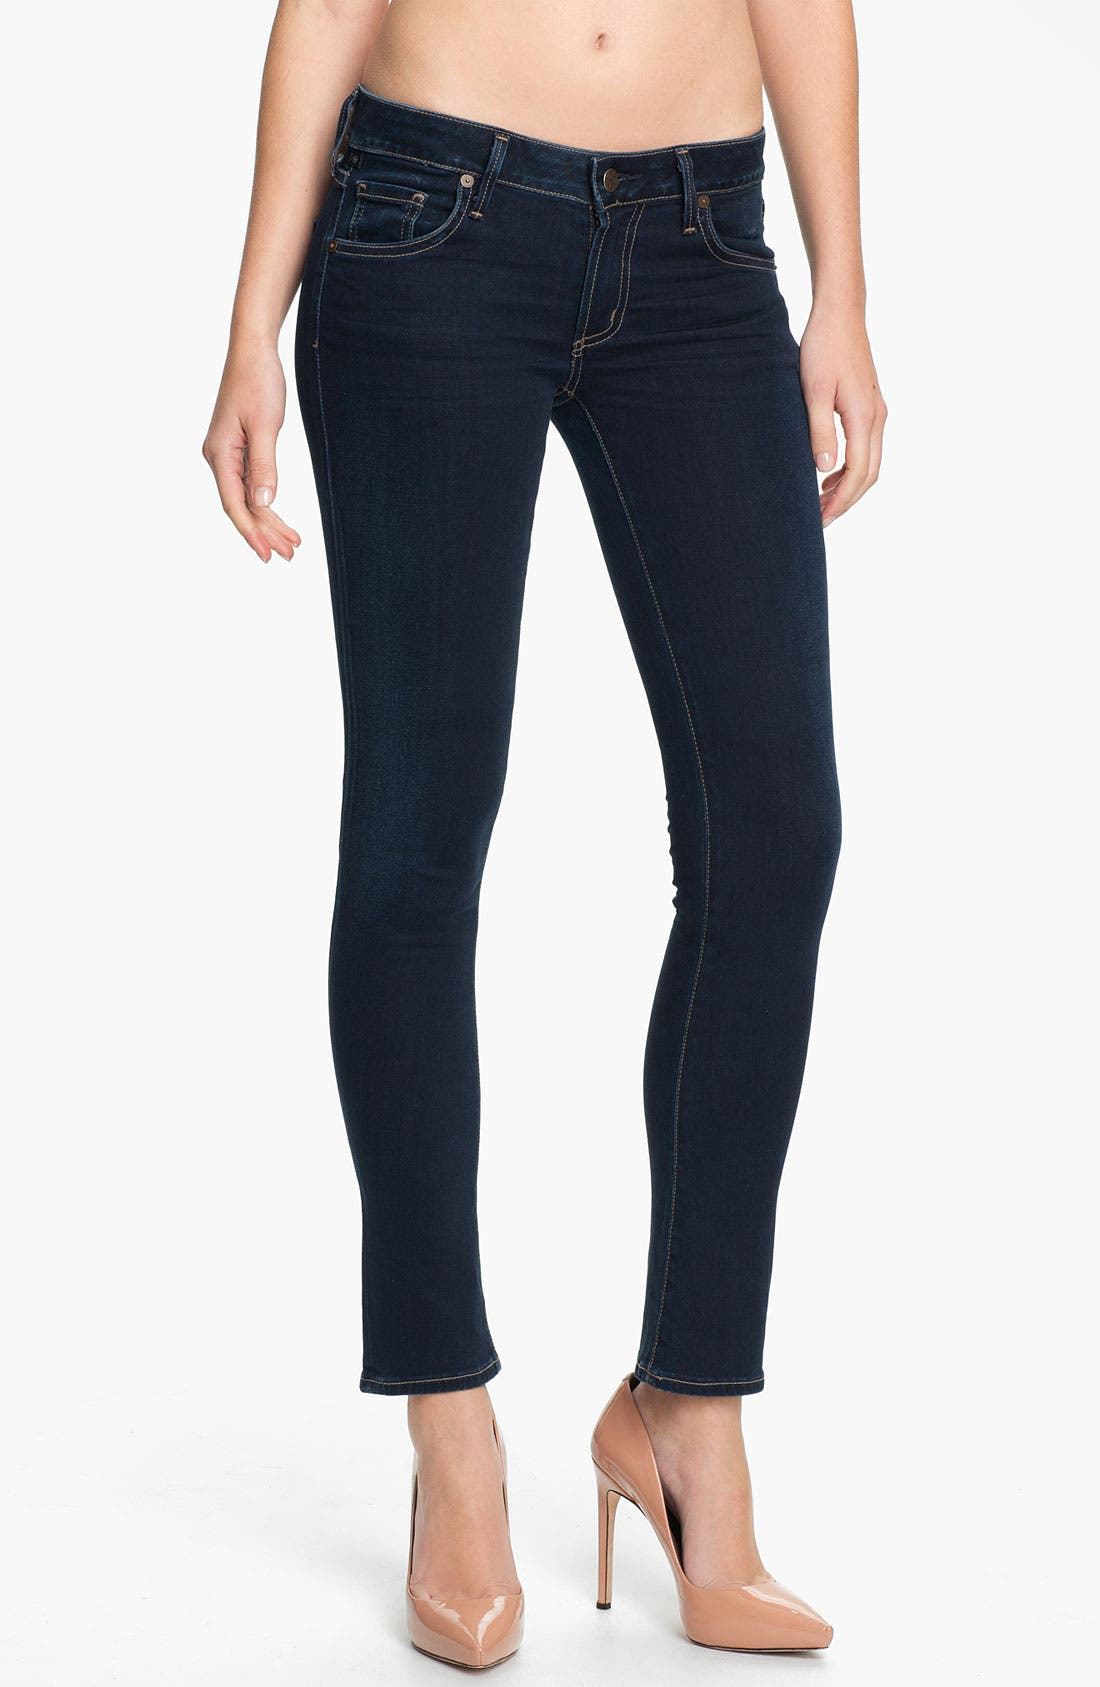 Alternate Image 1 Selected - Citizens of Humanity 'Racer' Crop Skinny Jeans (Starry)